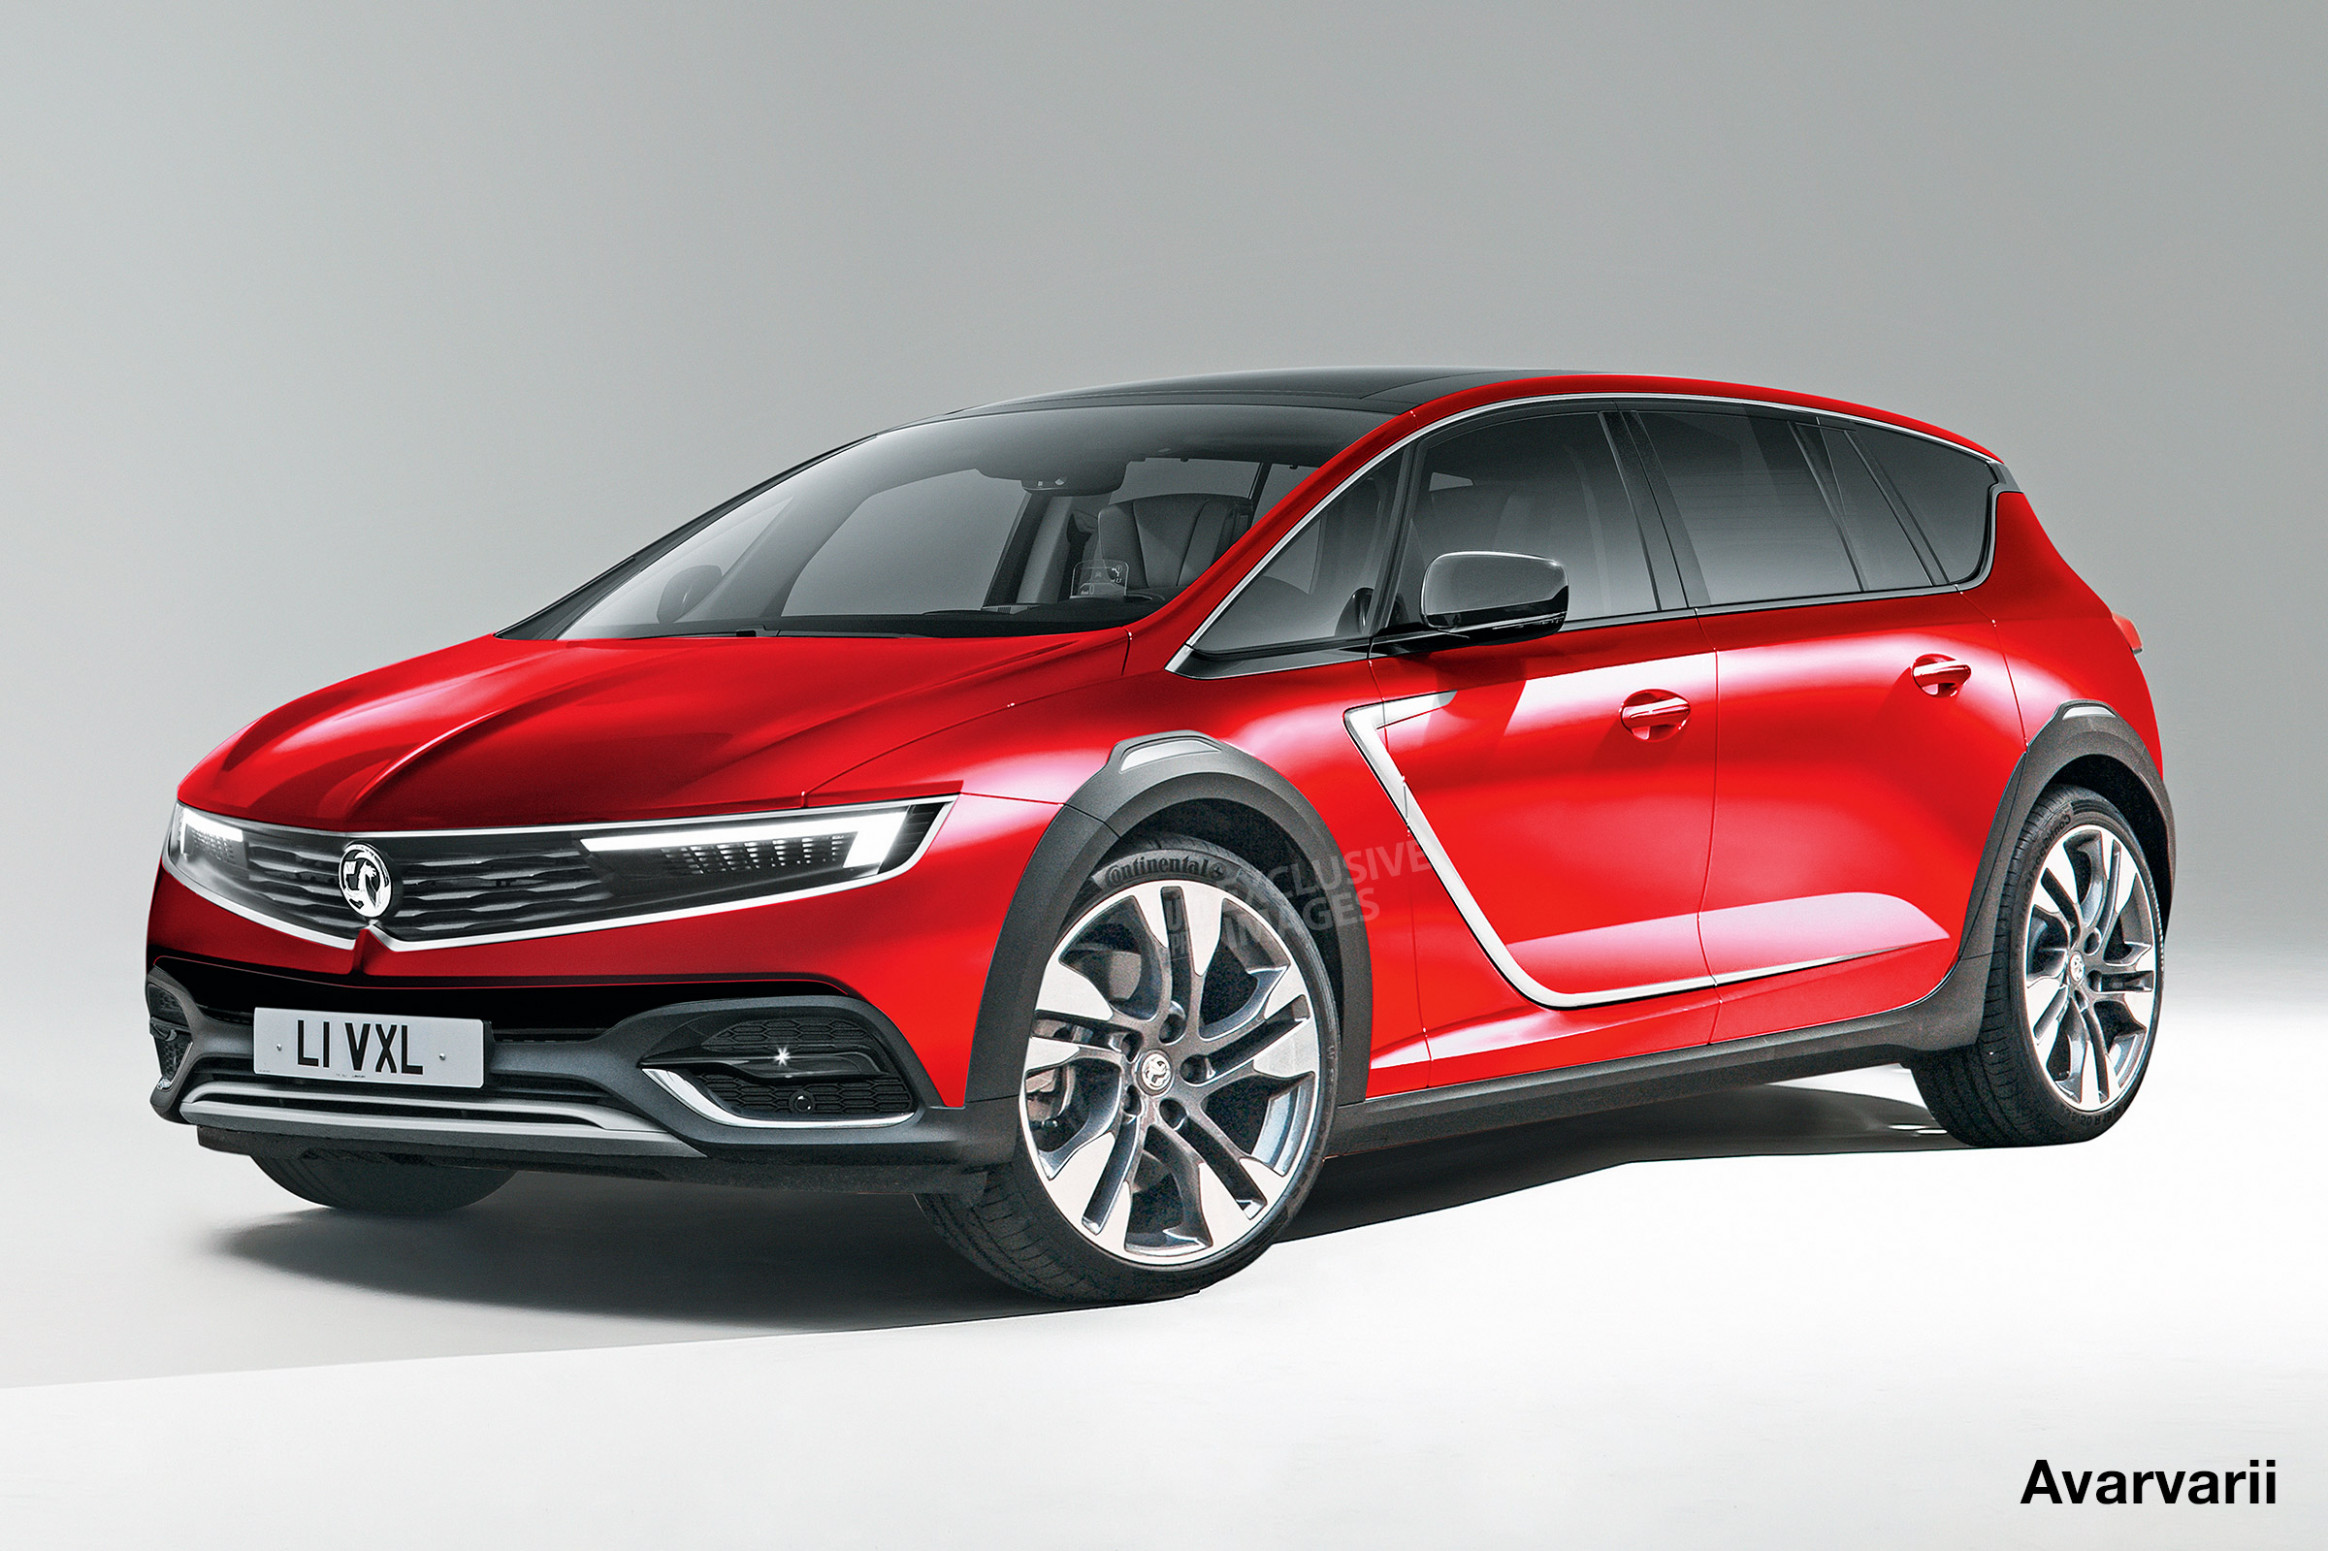 Redesign and Concept 2022 Opel Astra